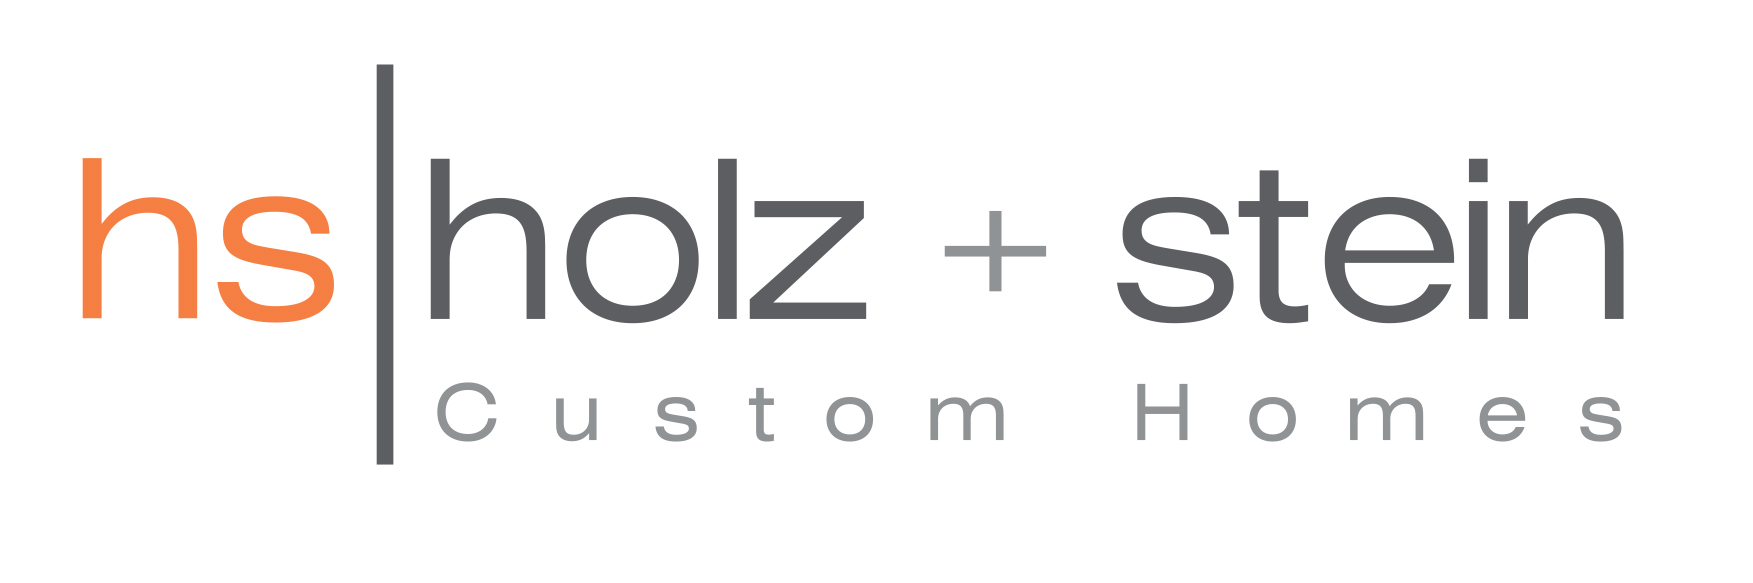 2019 Home Tour - Holz Stein logo